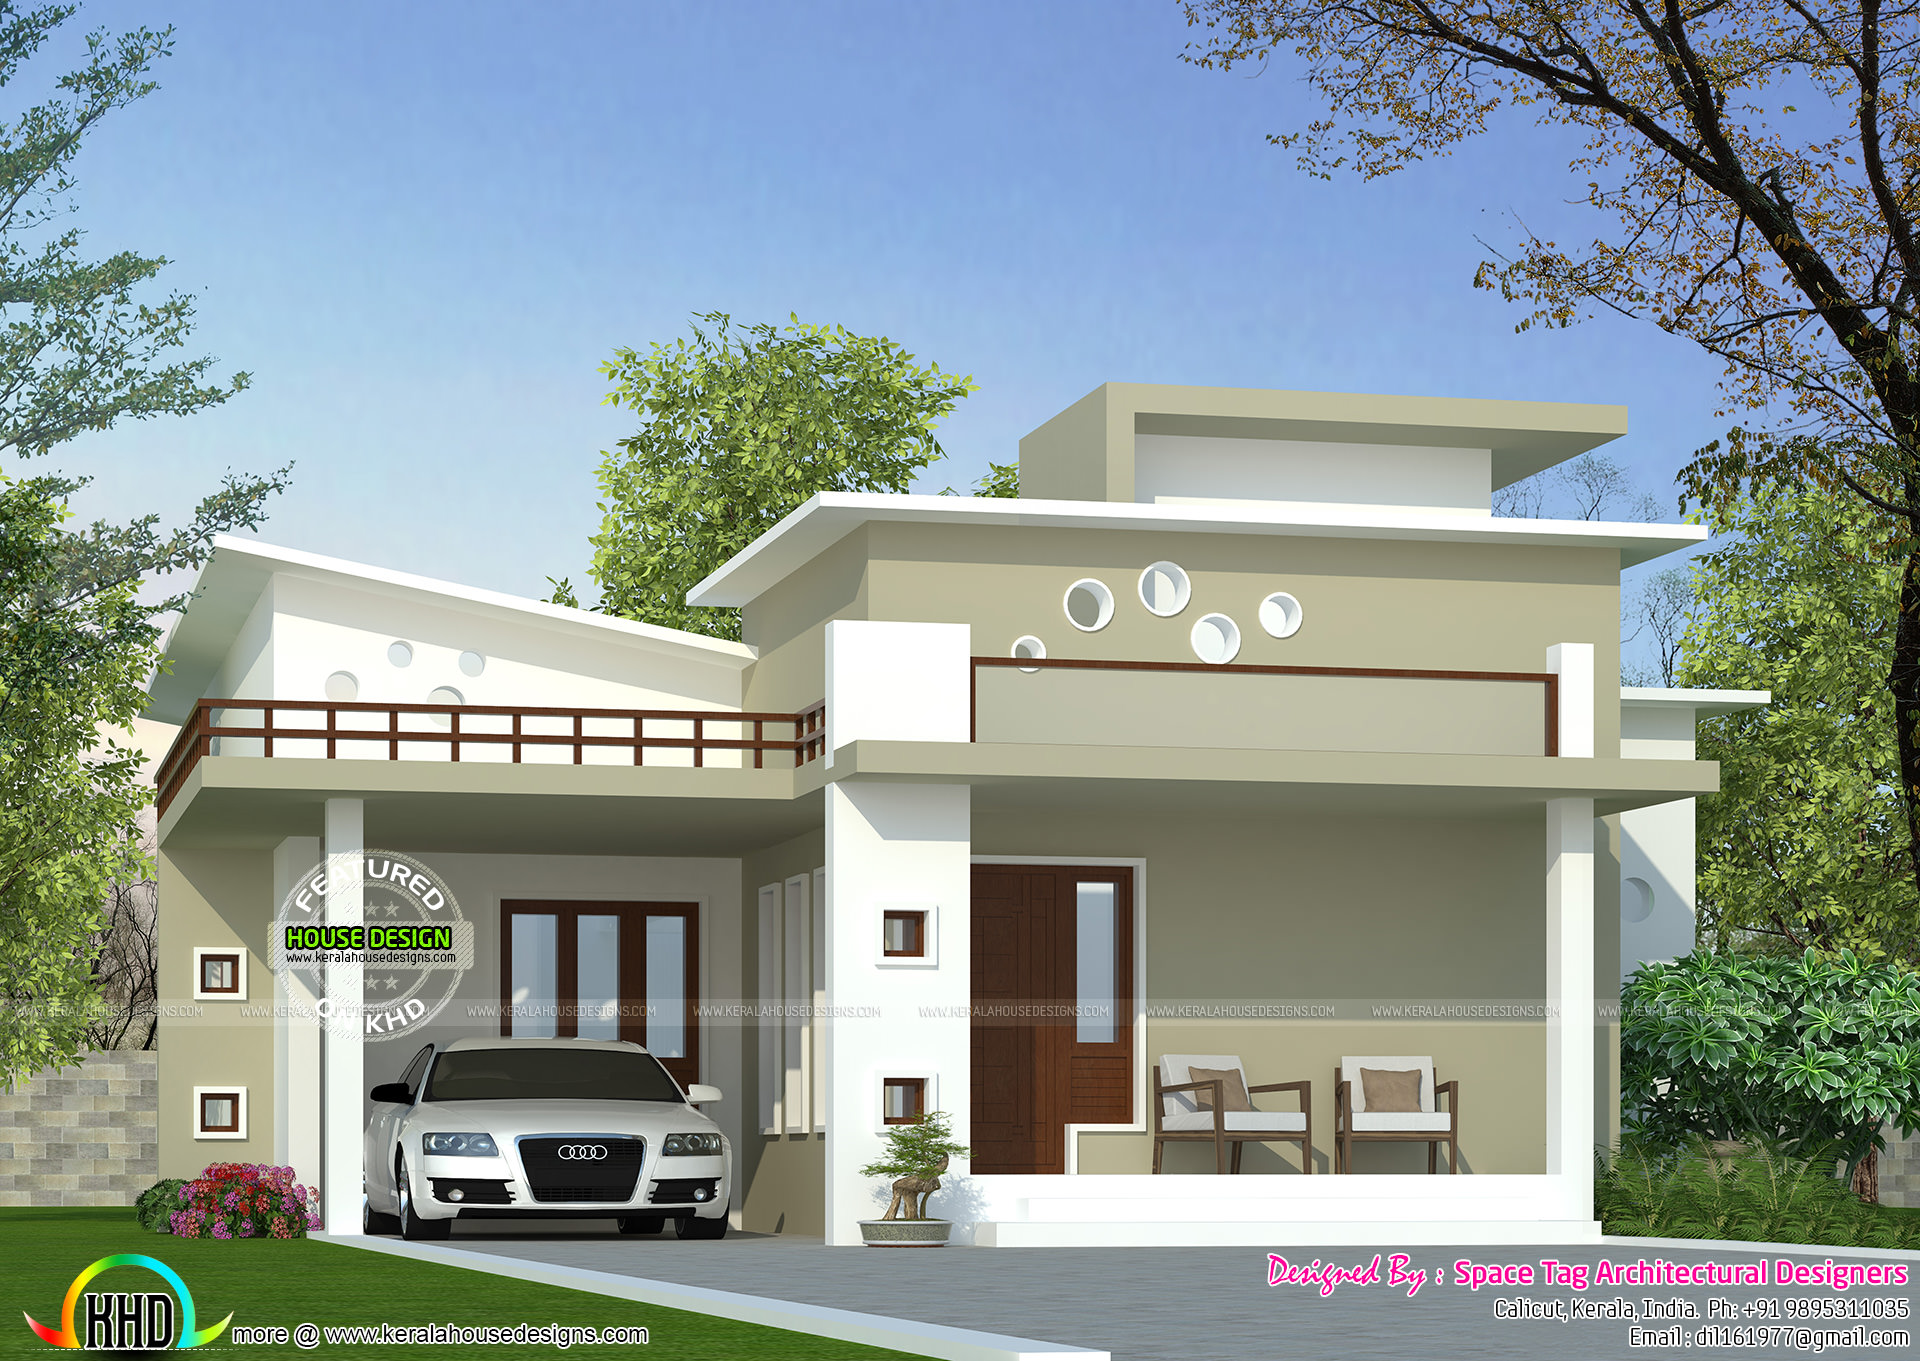 1350 sq ft kerala home - 15+ 3 Room House Low Cost Small House Design In Nepal PNG